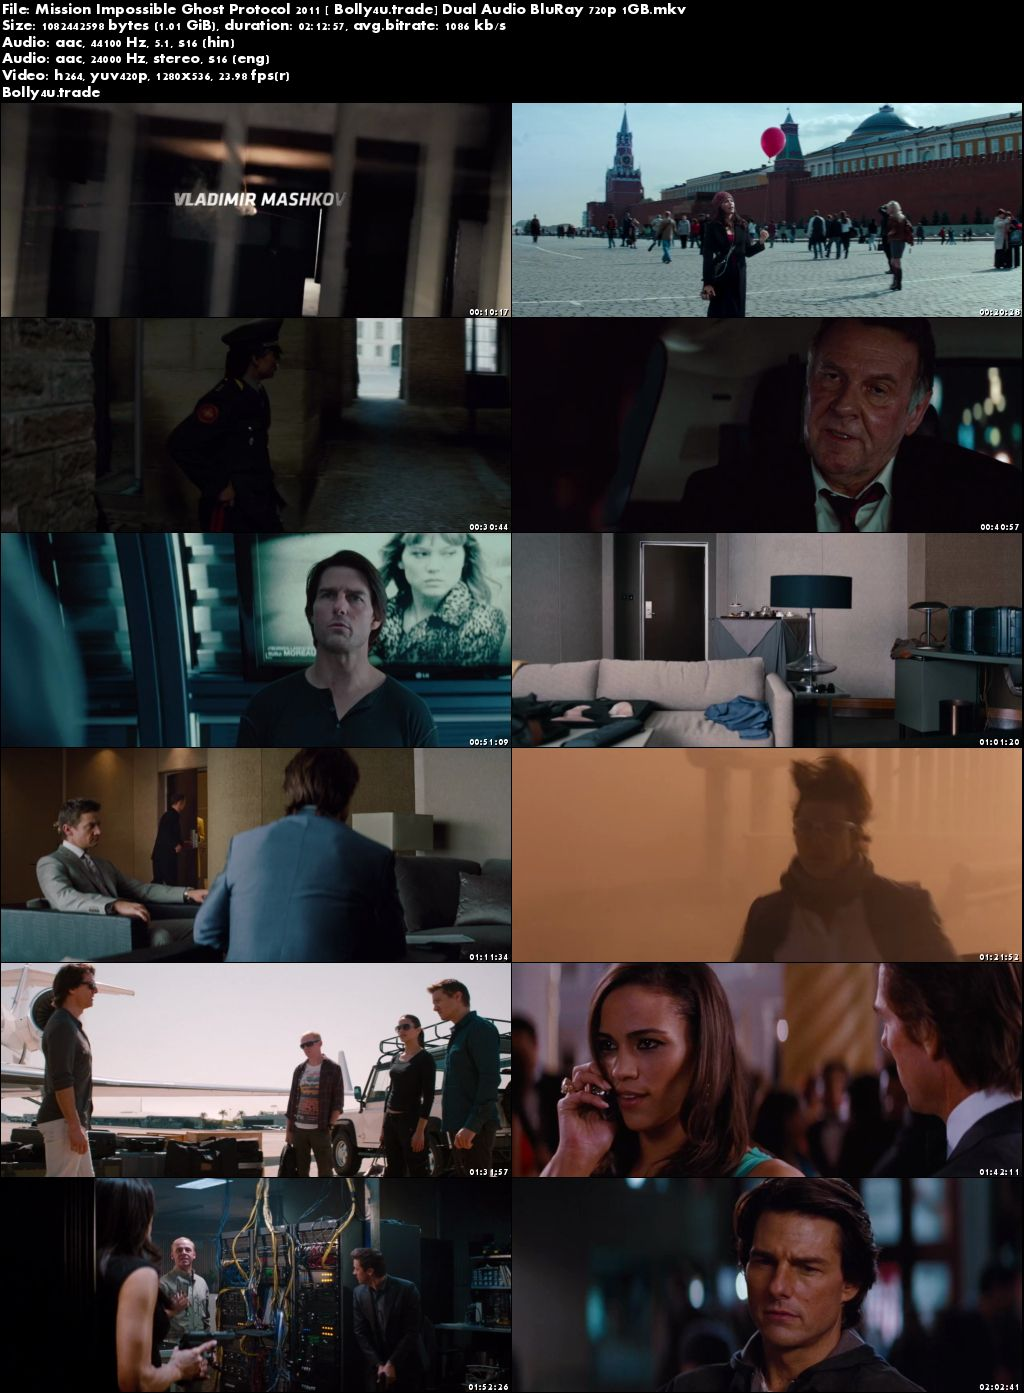 Mission Impossible Ghost Protocol 2011 BRRip 400MB Hindi Dual Audio 480p Download